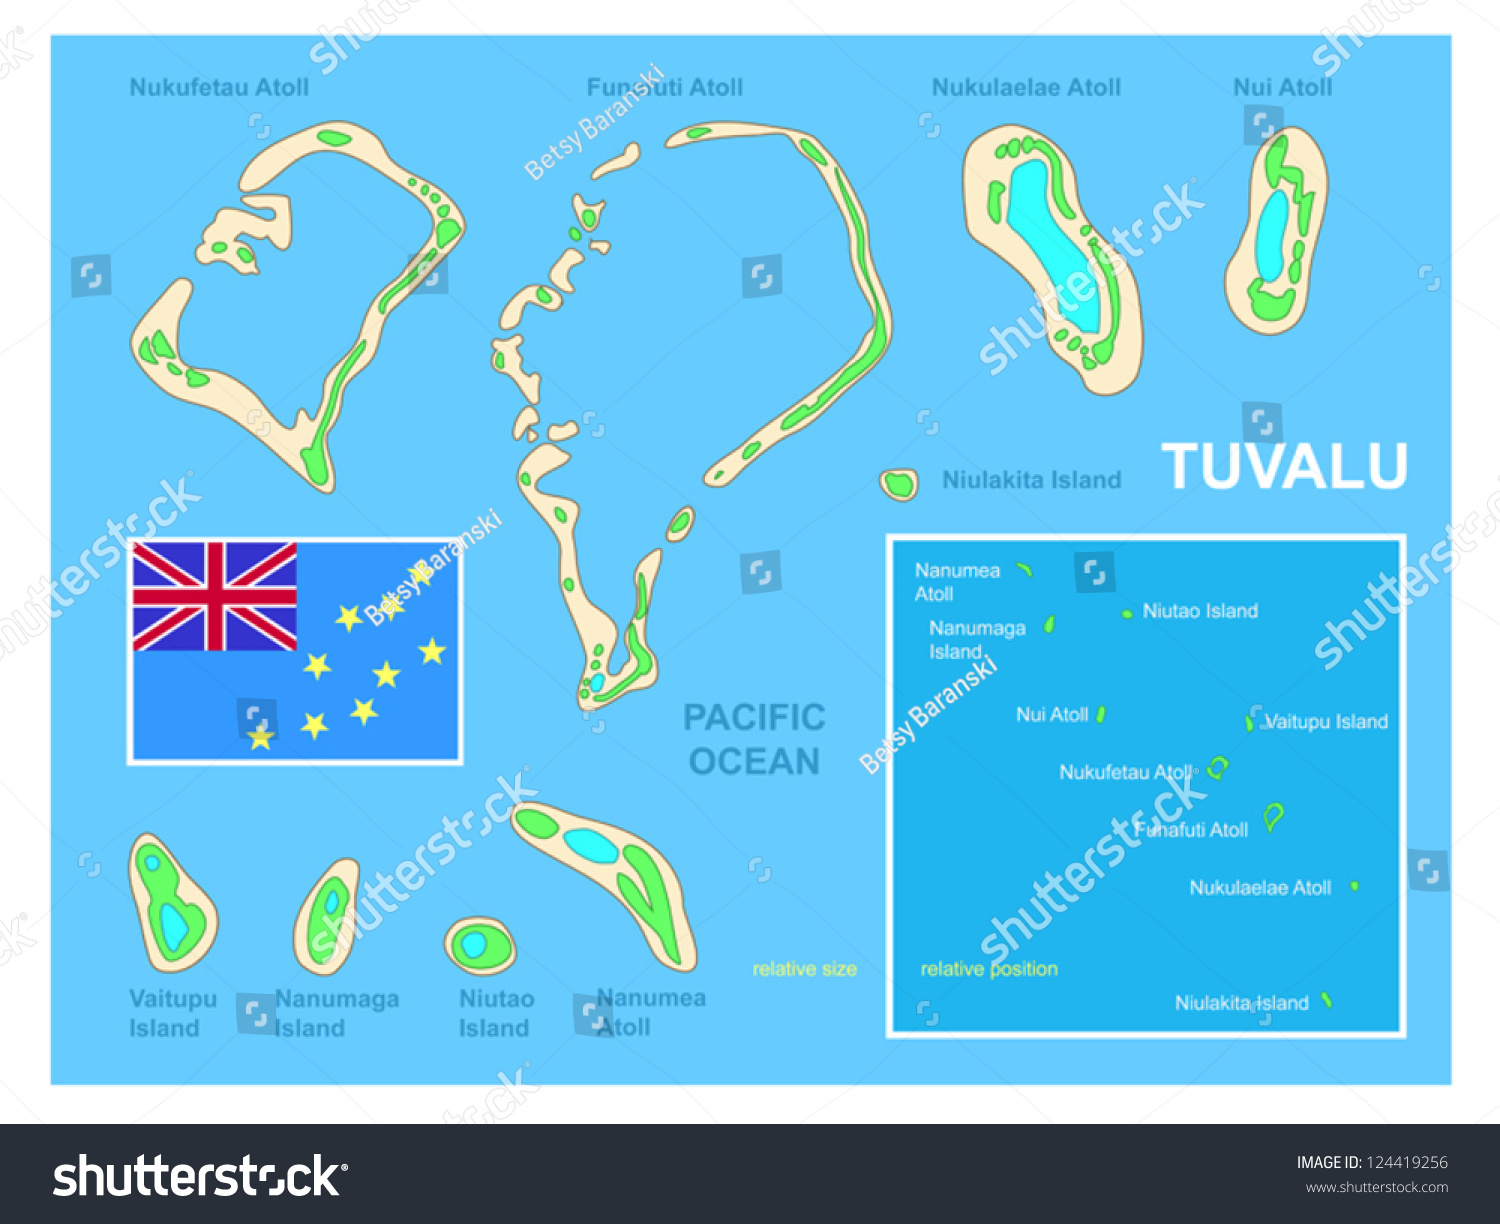 Tuvalu Map Flag Bright Colorful Map Stock Vector - Tuvalu map